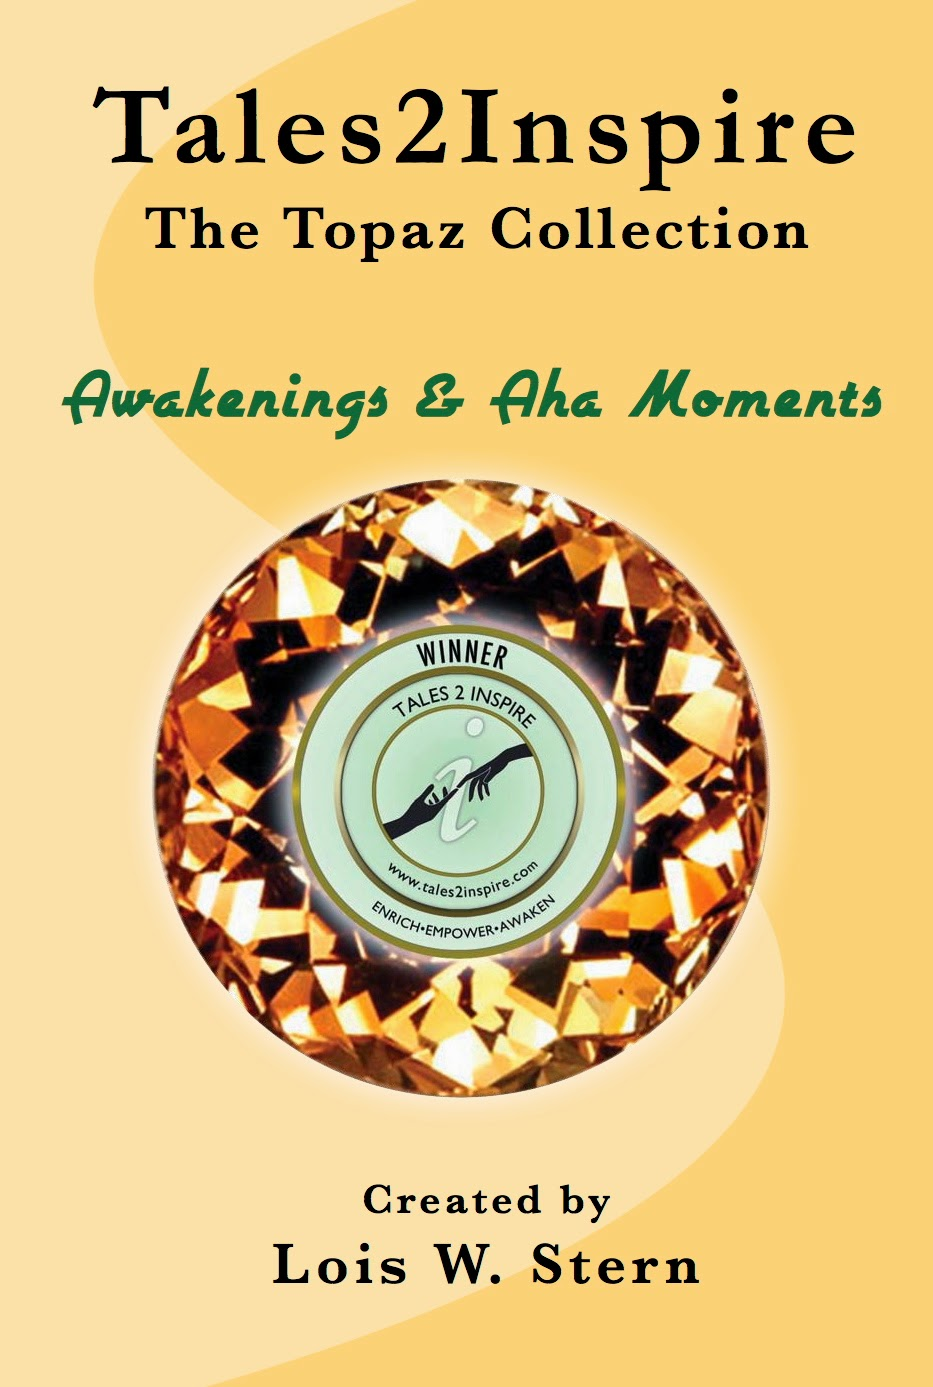 http://www.amazon.com/Tales2Inspire-Topaz-Collection-Awakenings-Tales2InspireTM-ebook/dp/B00GNL1W5C/ref=la_B005HOO640_1_1?s=books&ie=UTF8&qid=1399405680&sr=1-1